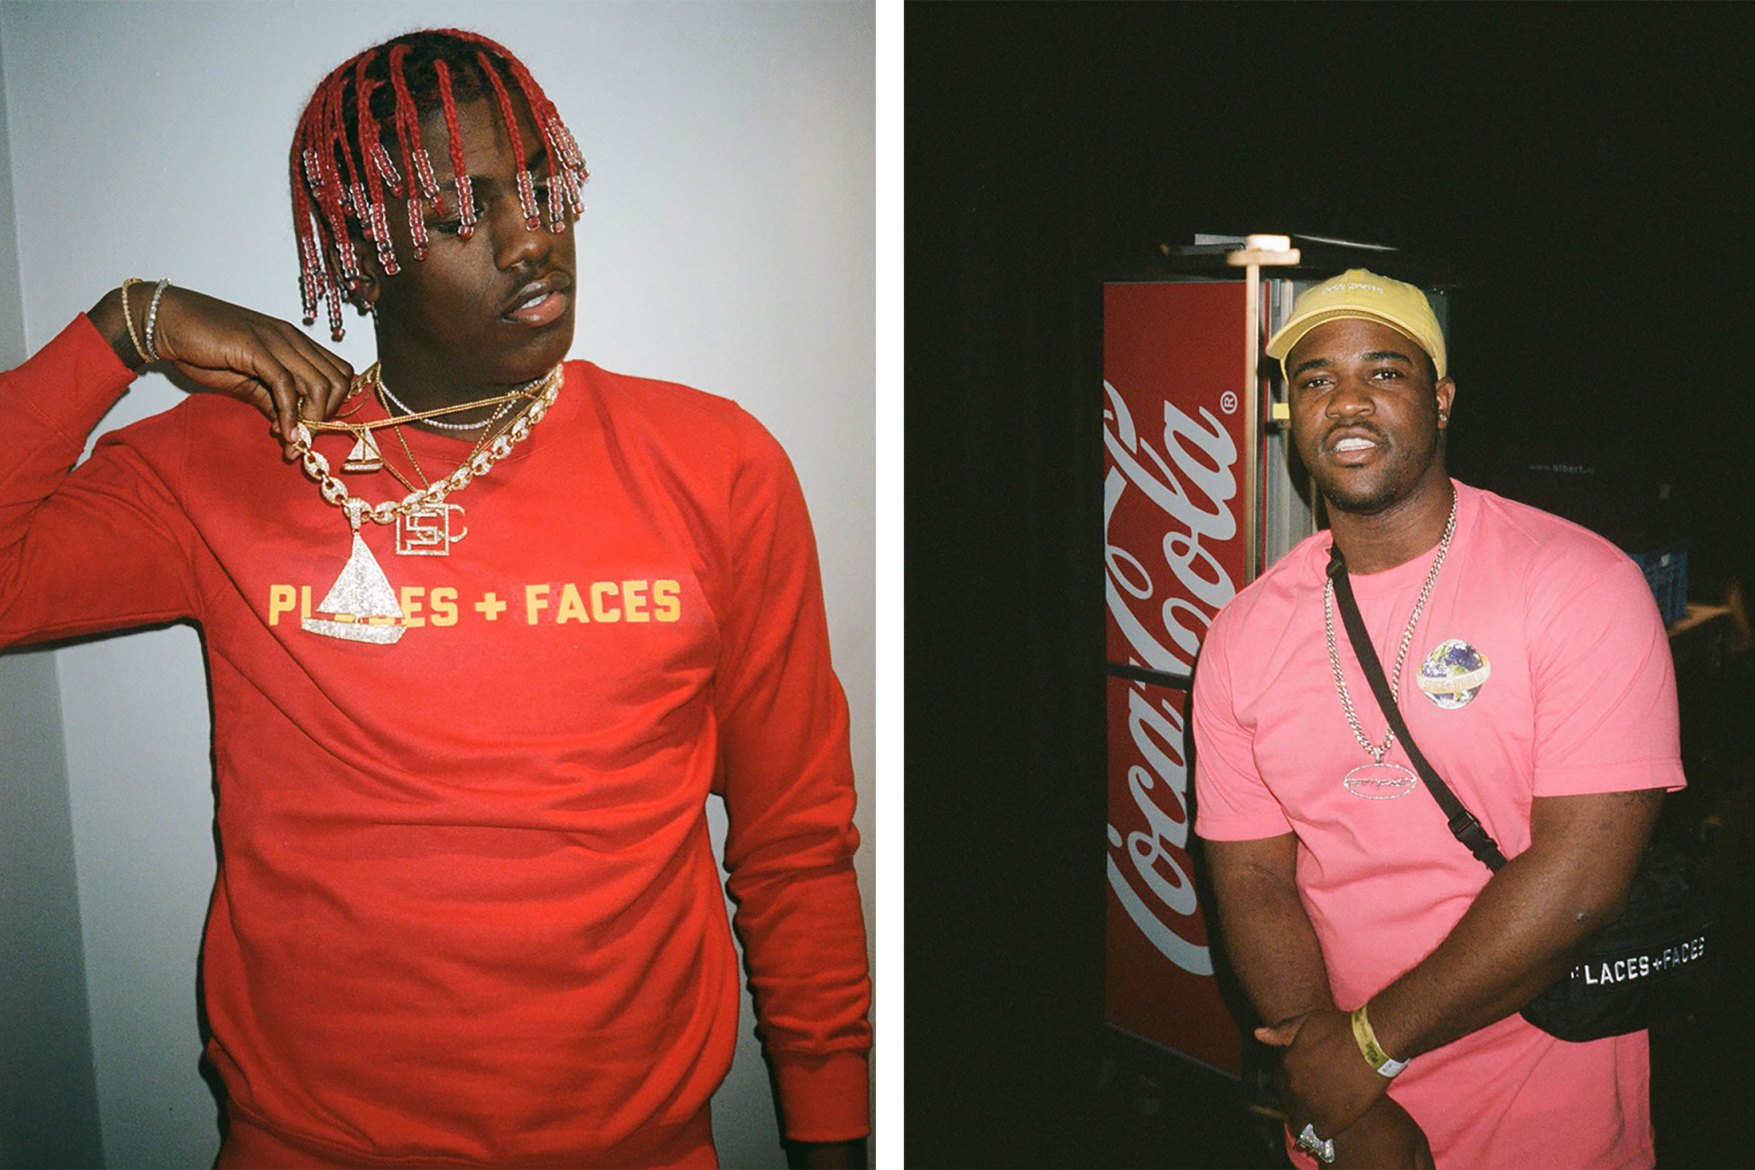 Lil Yatchy et A$AP Ferg introduisent la nouvelle collection Places+Faces